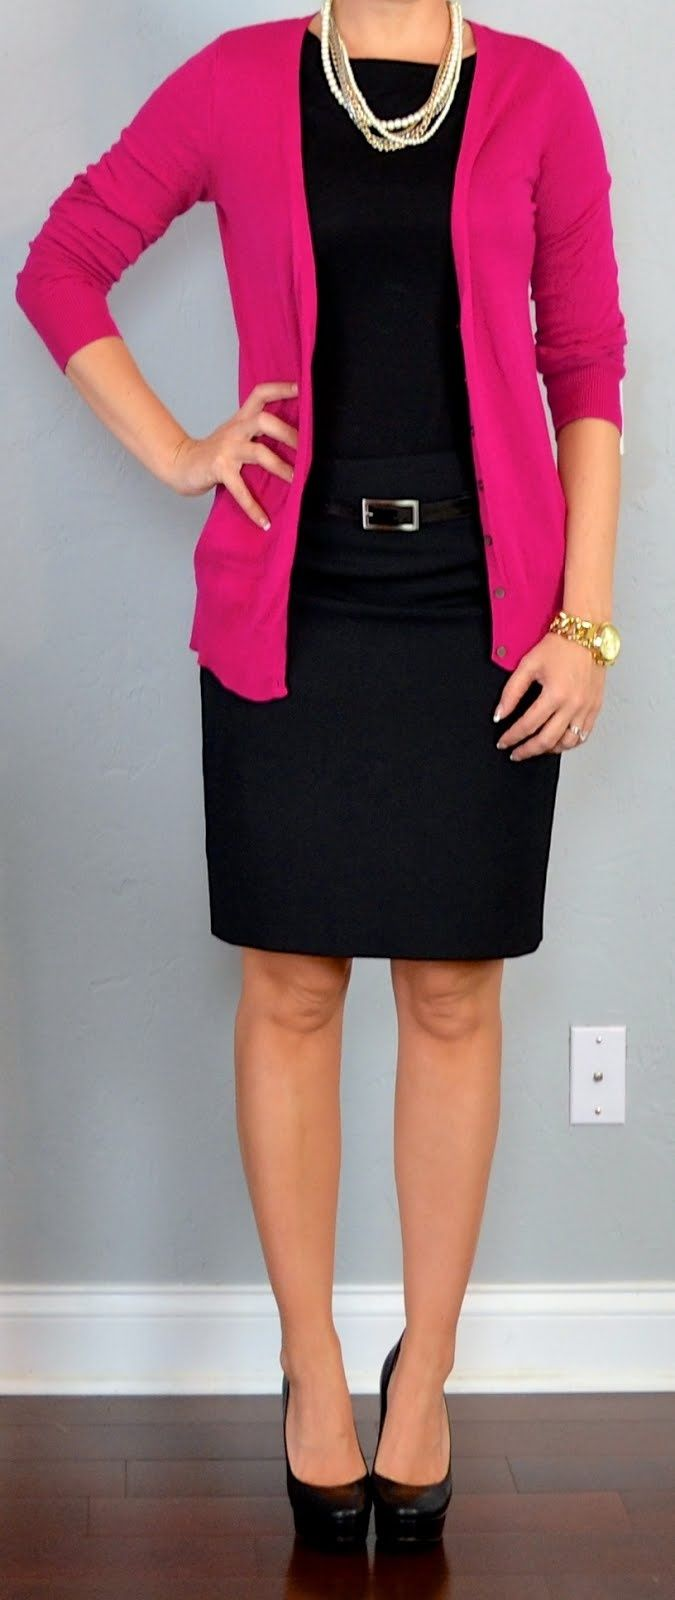 Top: Bright pink cardigan - Old Navy, Black cami- ...